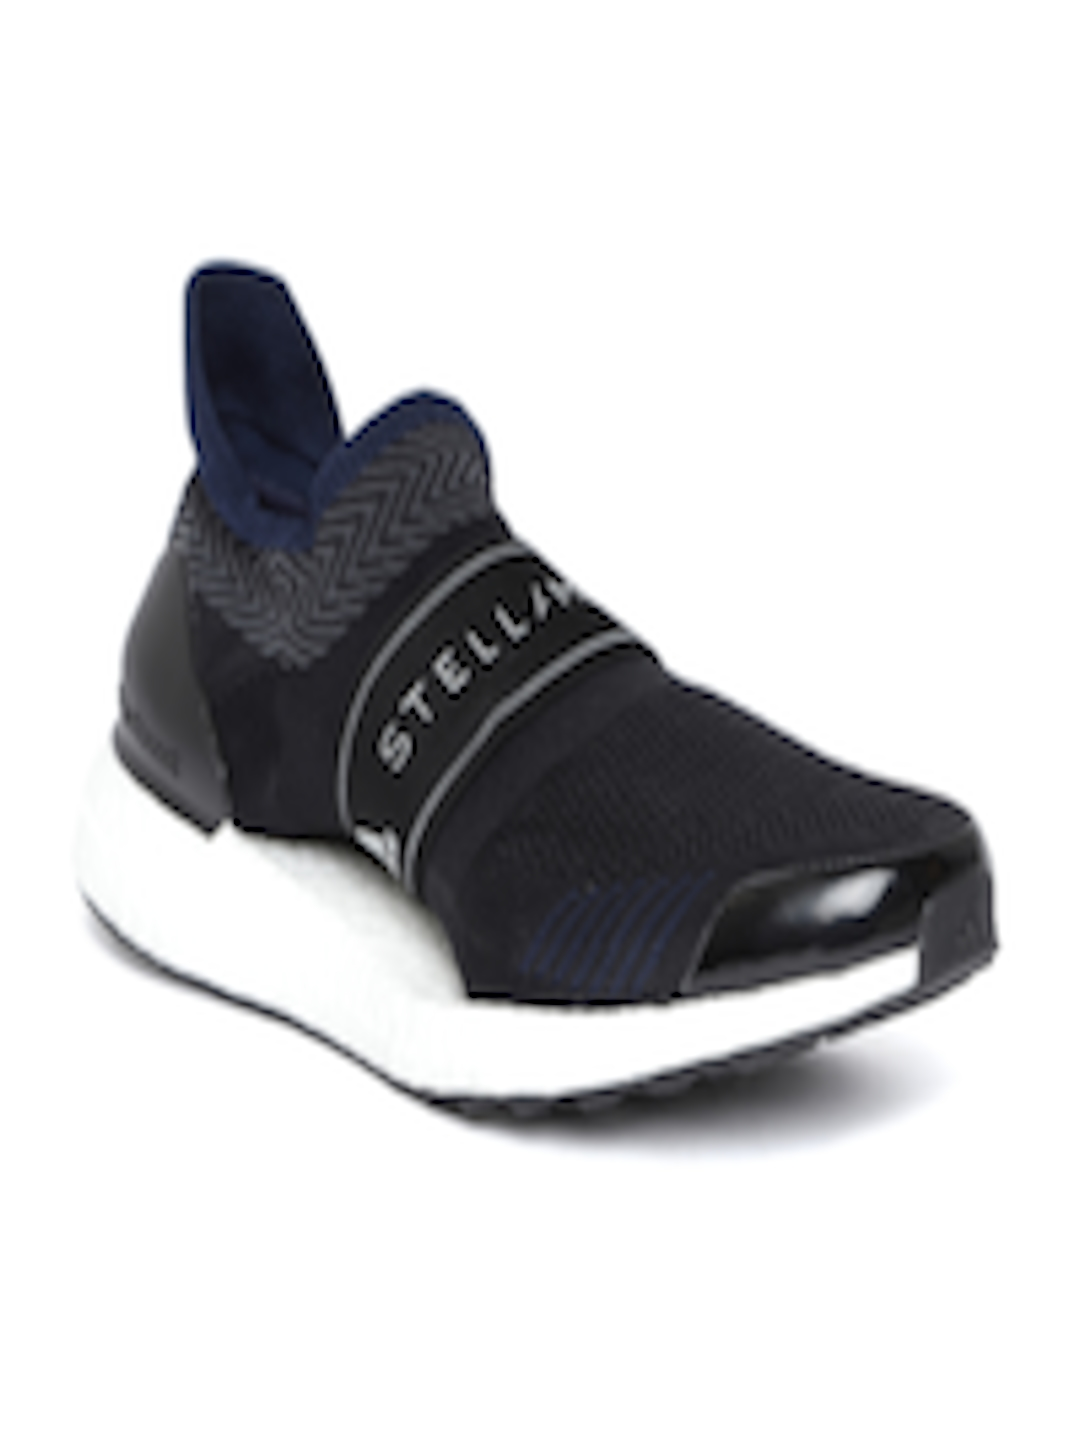 sports shoes fbbe7 77719 Buy ADIDAS Stella McCartney Women Black Ultraboost X 3.D. S. Running Shoes  - Sports Shoes for Women 8618437   Myntra